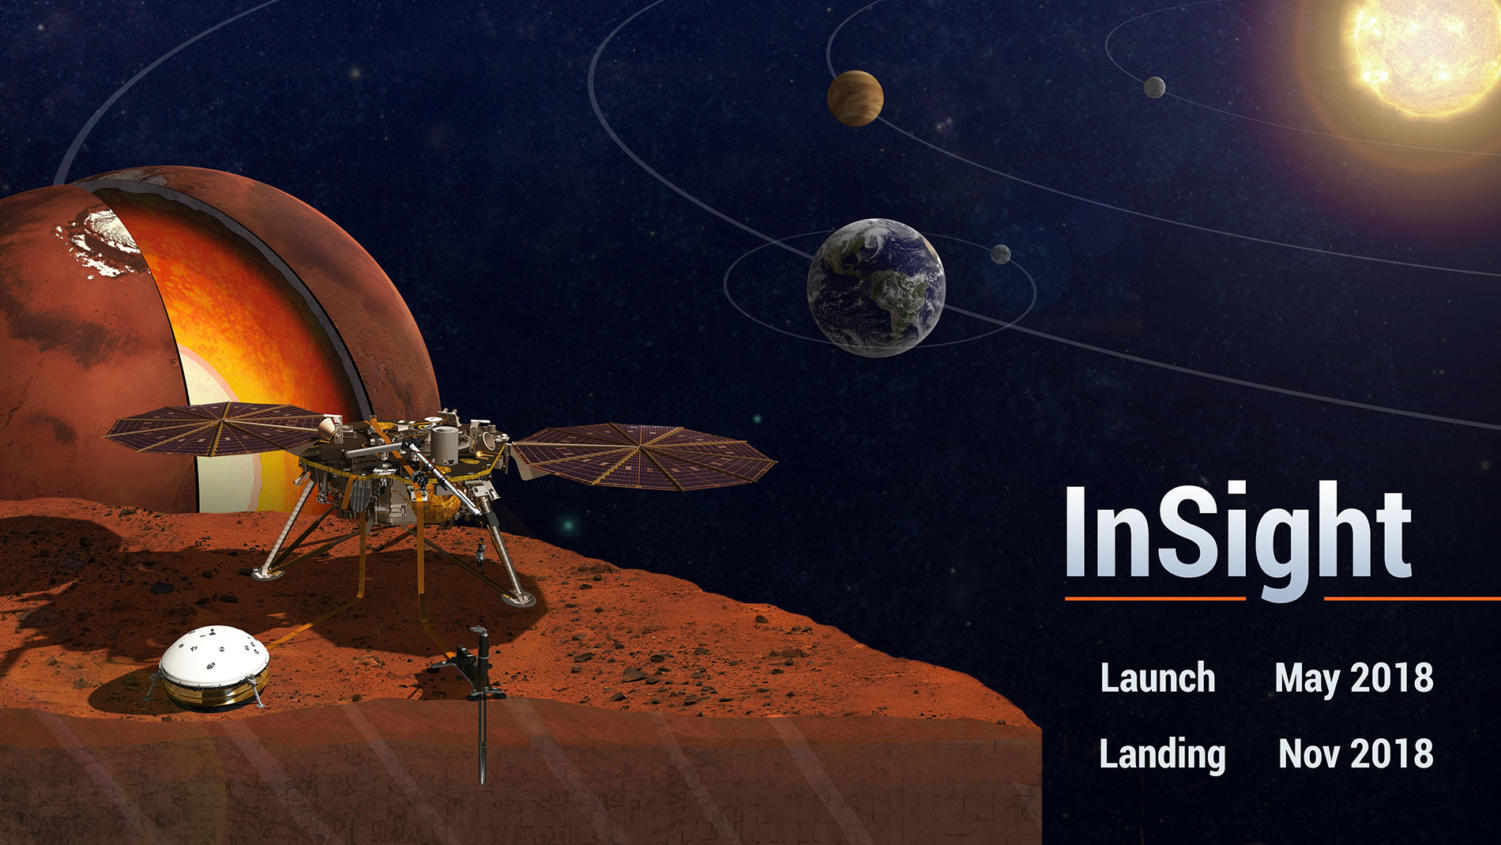 NASA successfully lands InSight on Nov. 26.